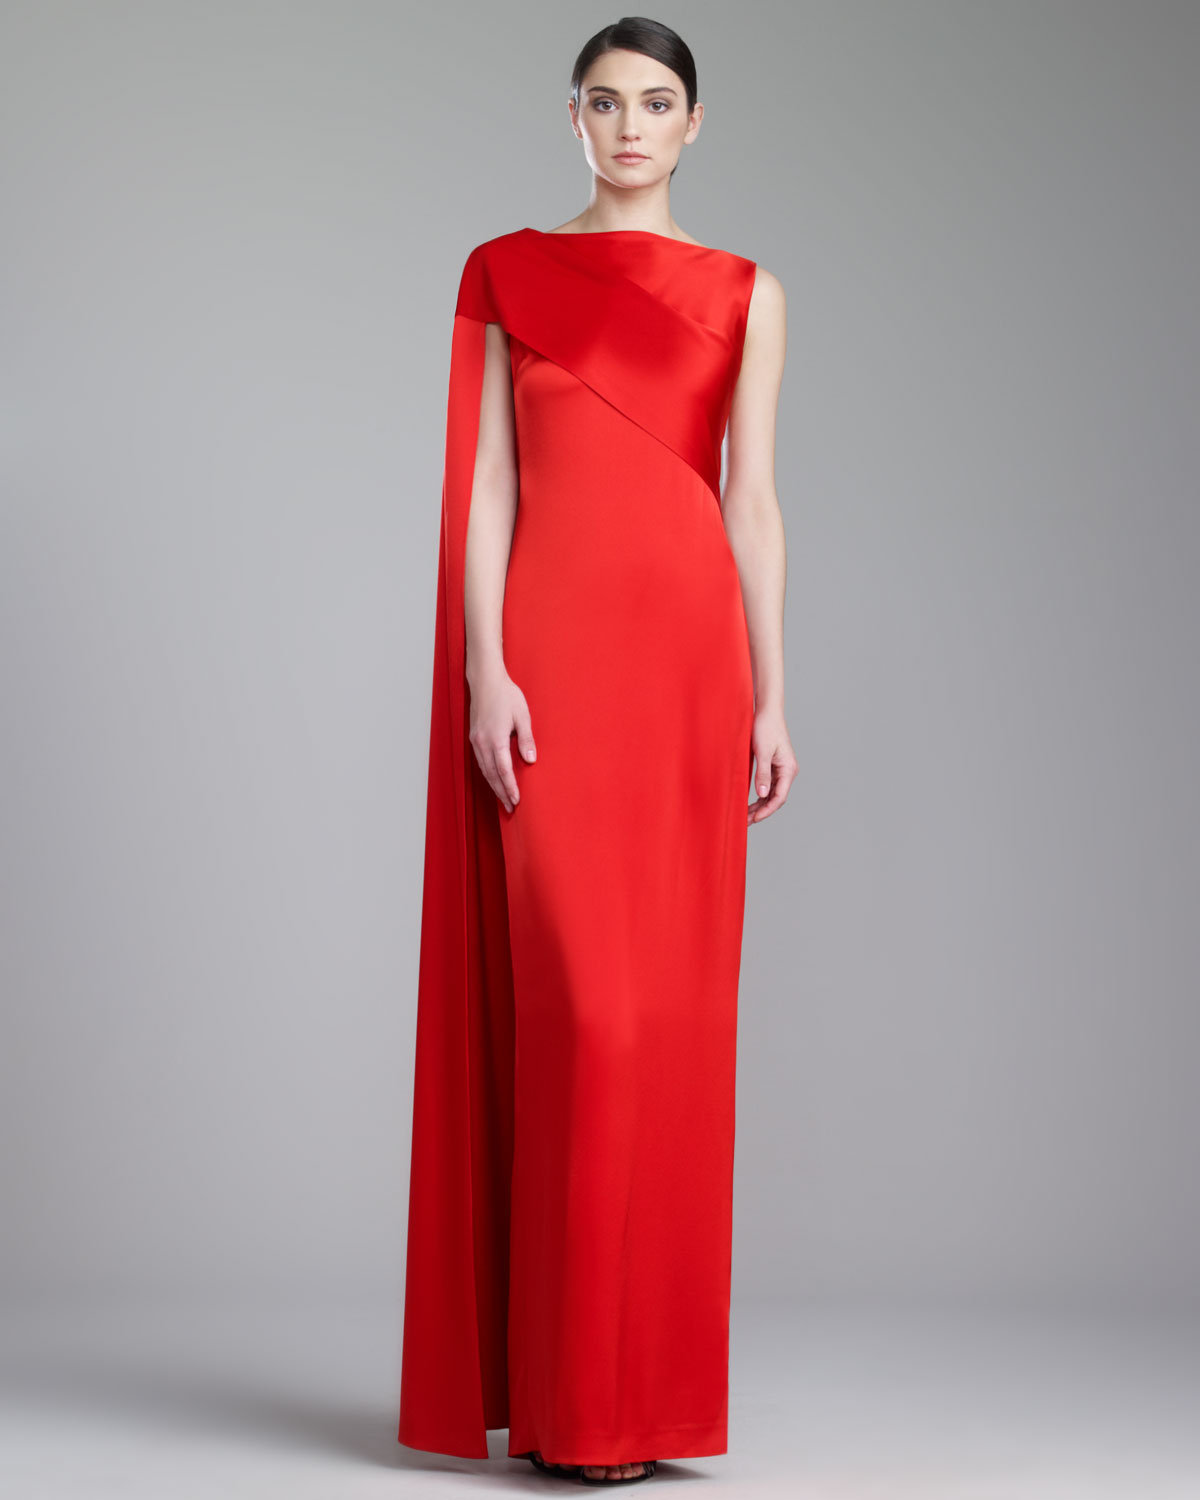 St. john Liquid Satin Gown Venetian Red in Red | Lyst